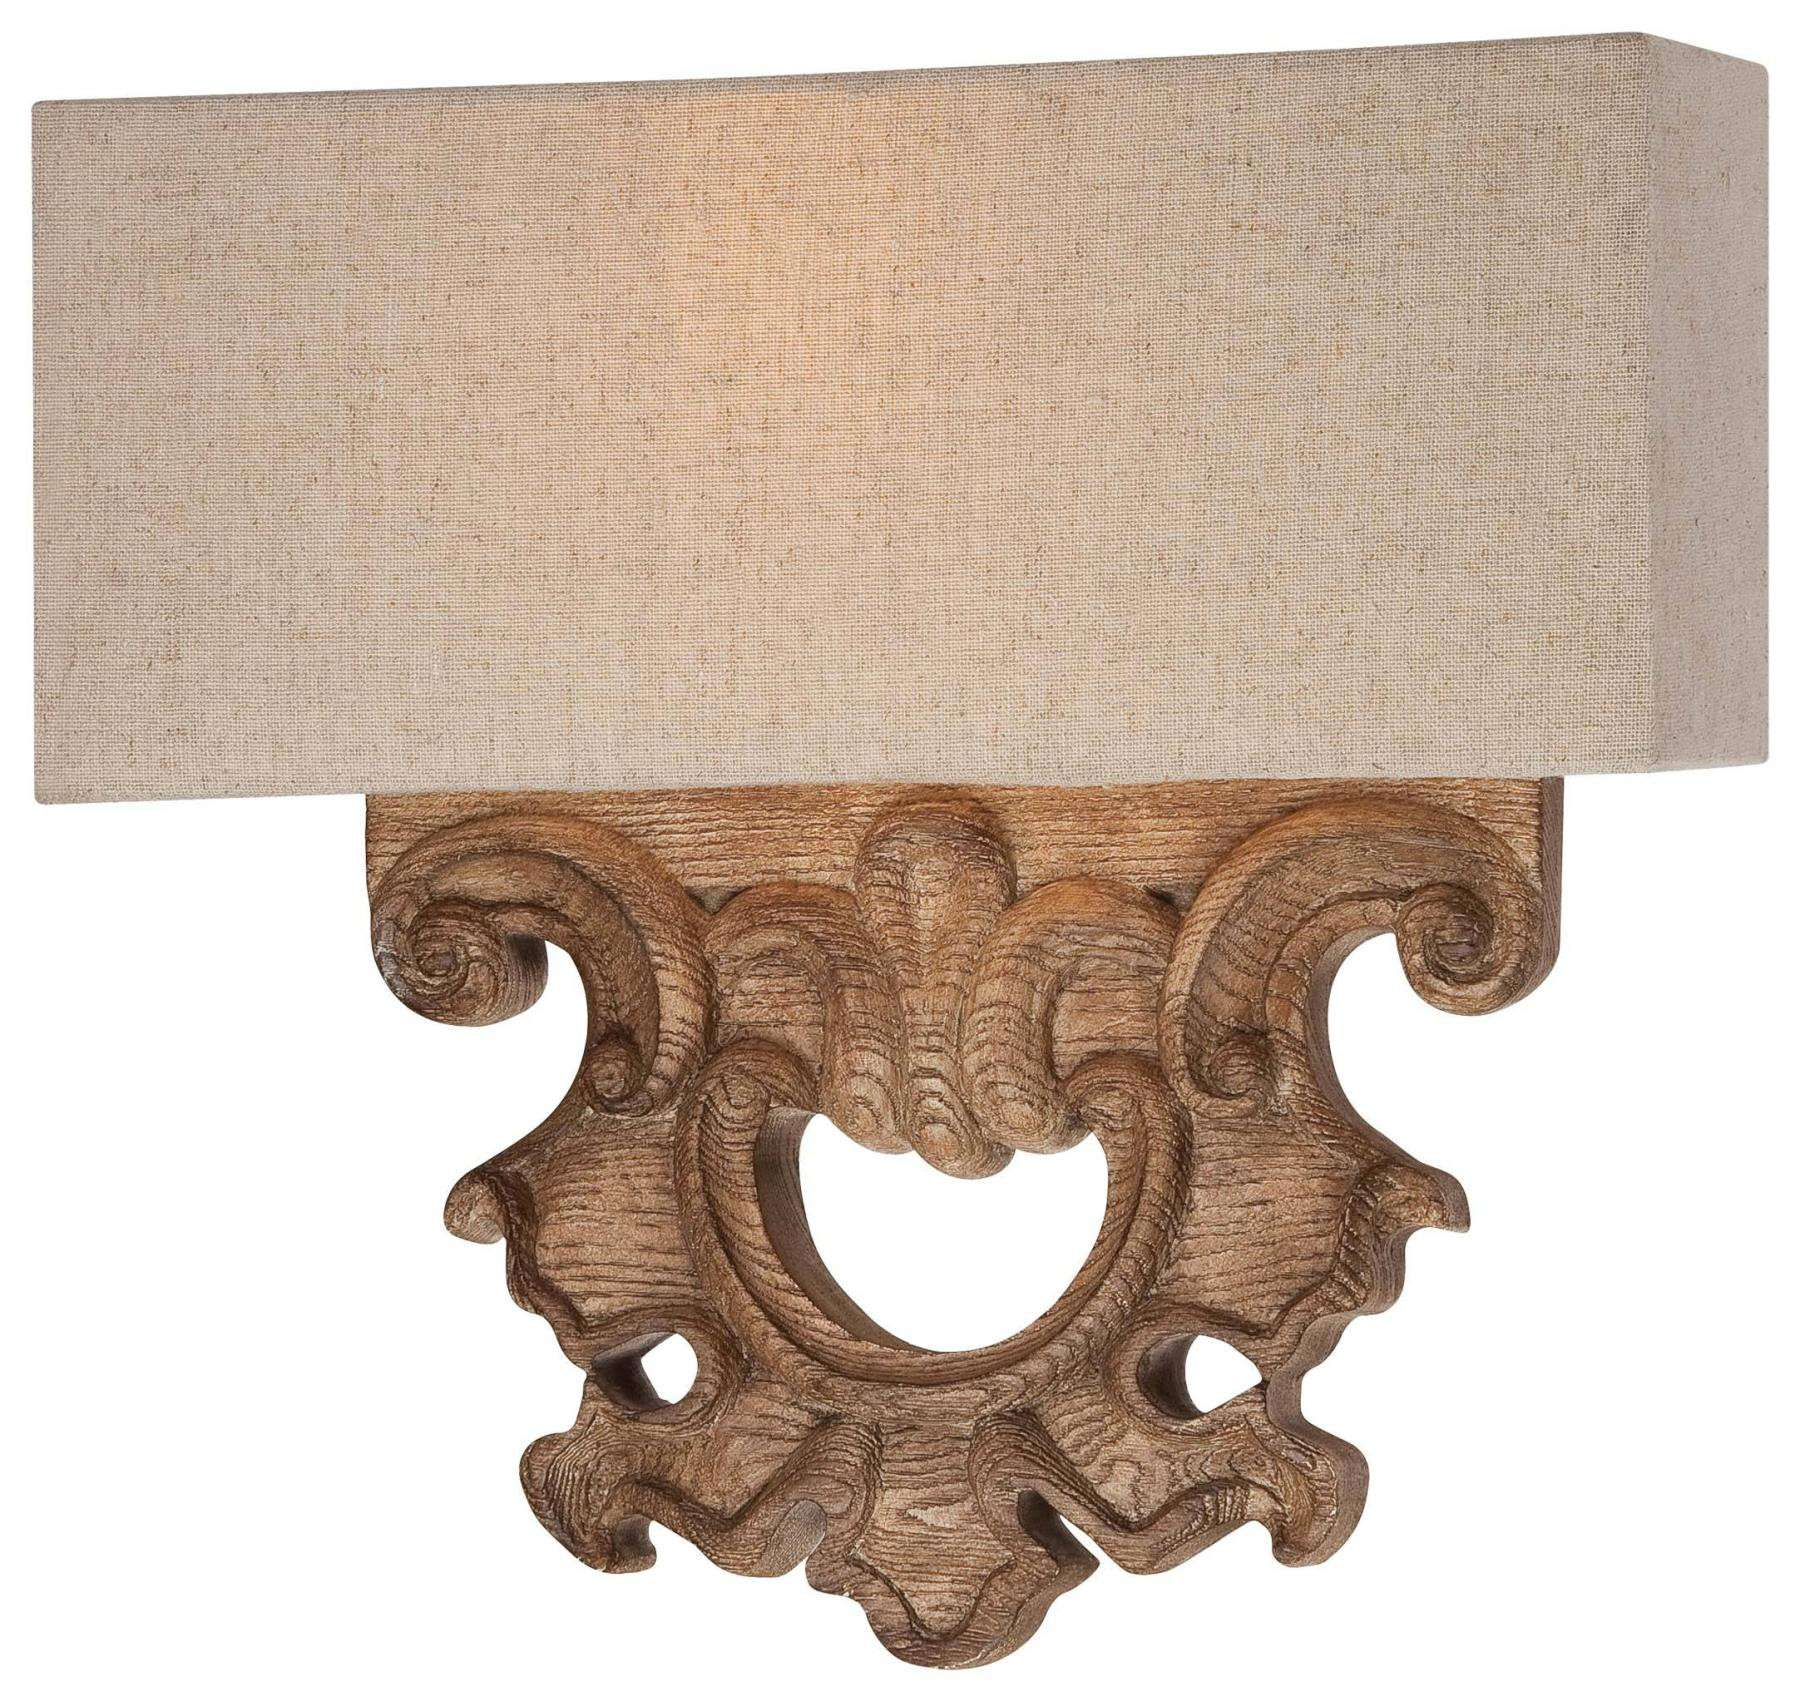 Minka Lavery 2 Light Wall Sconce In Classic Oak Patina Finish W/ Beige Fabric Shade